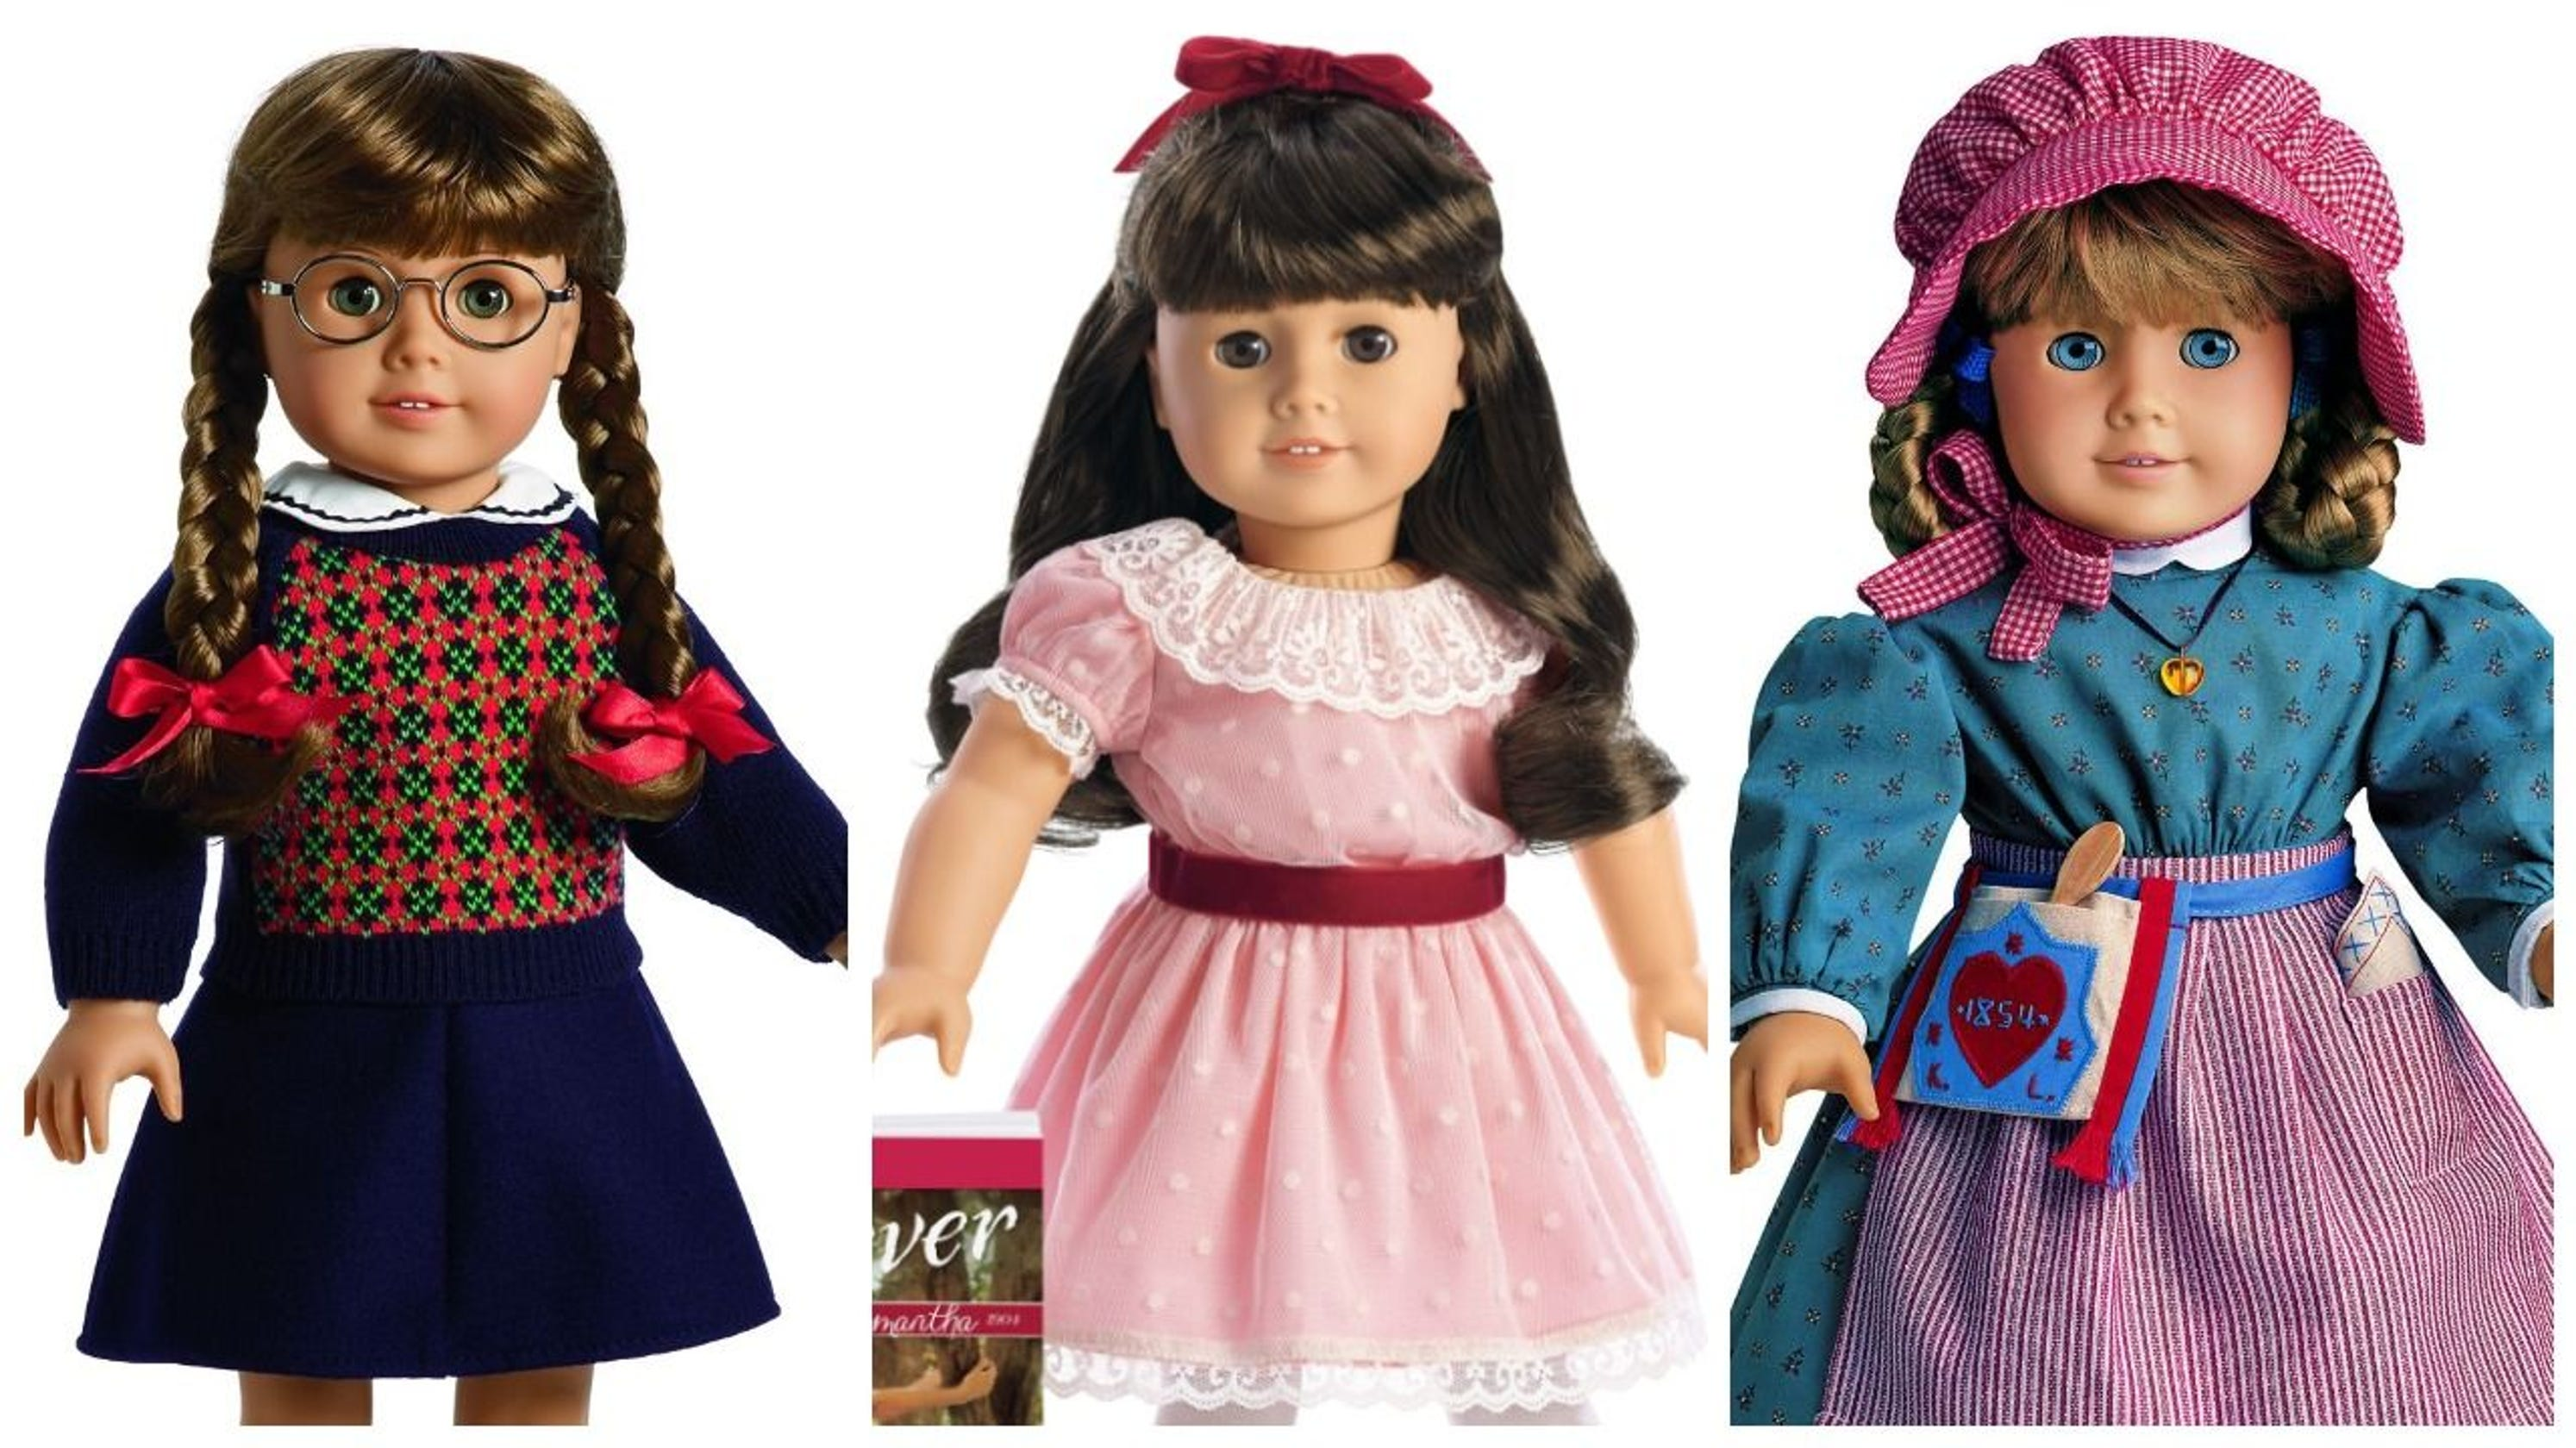 american girl dolls sell for thousands on ebay